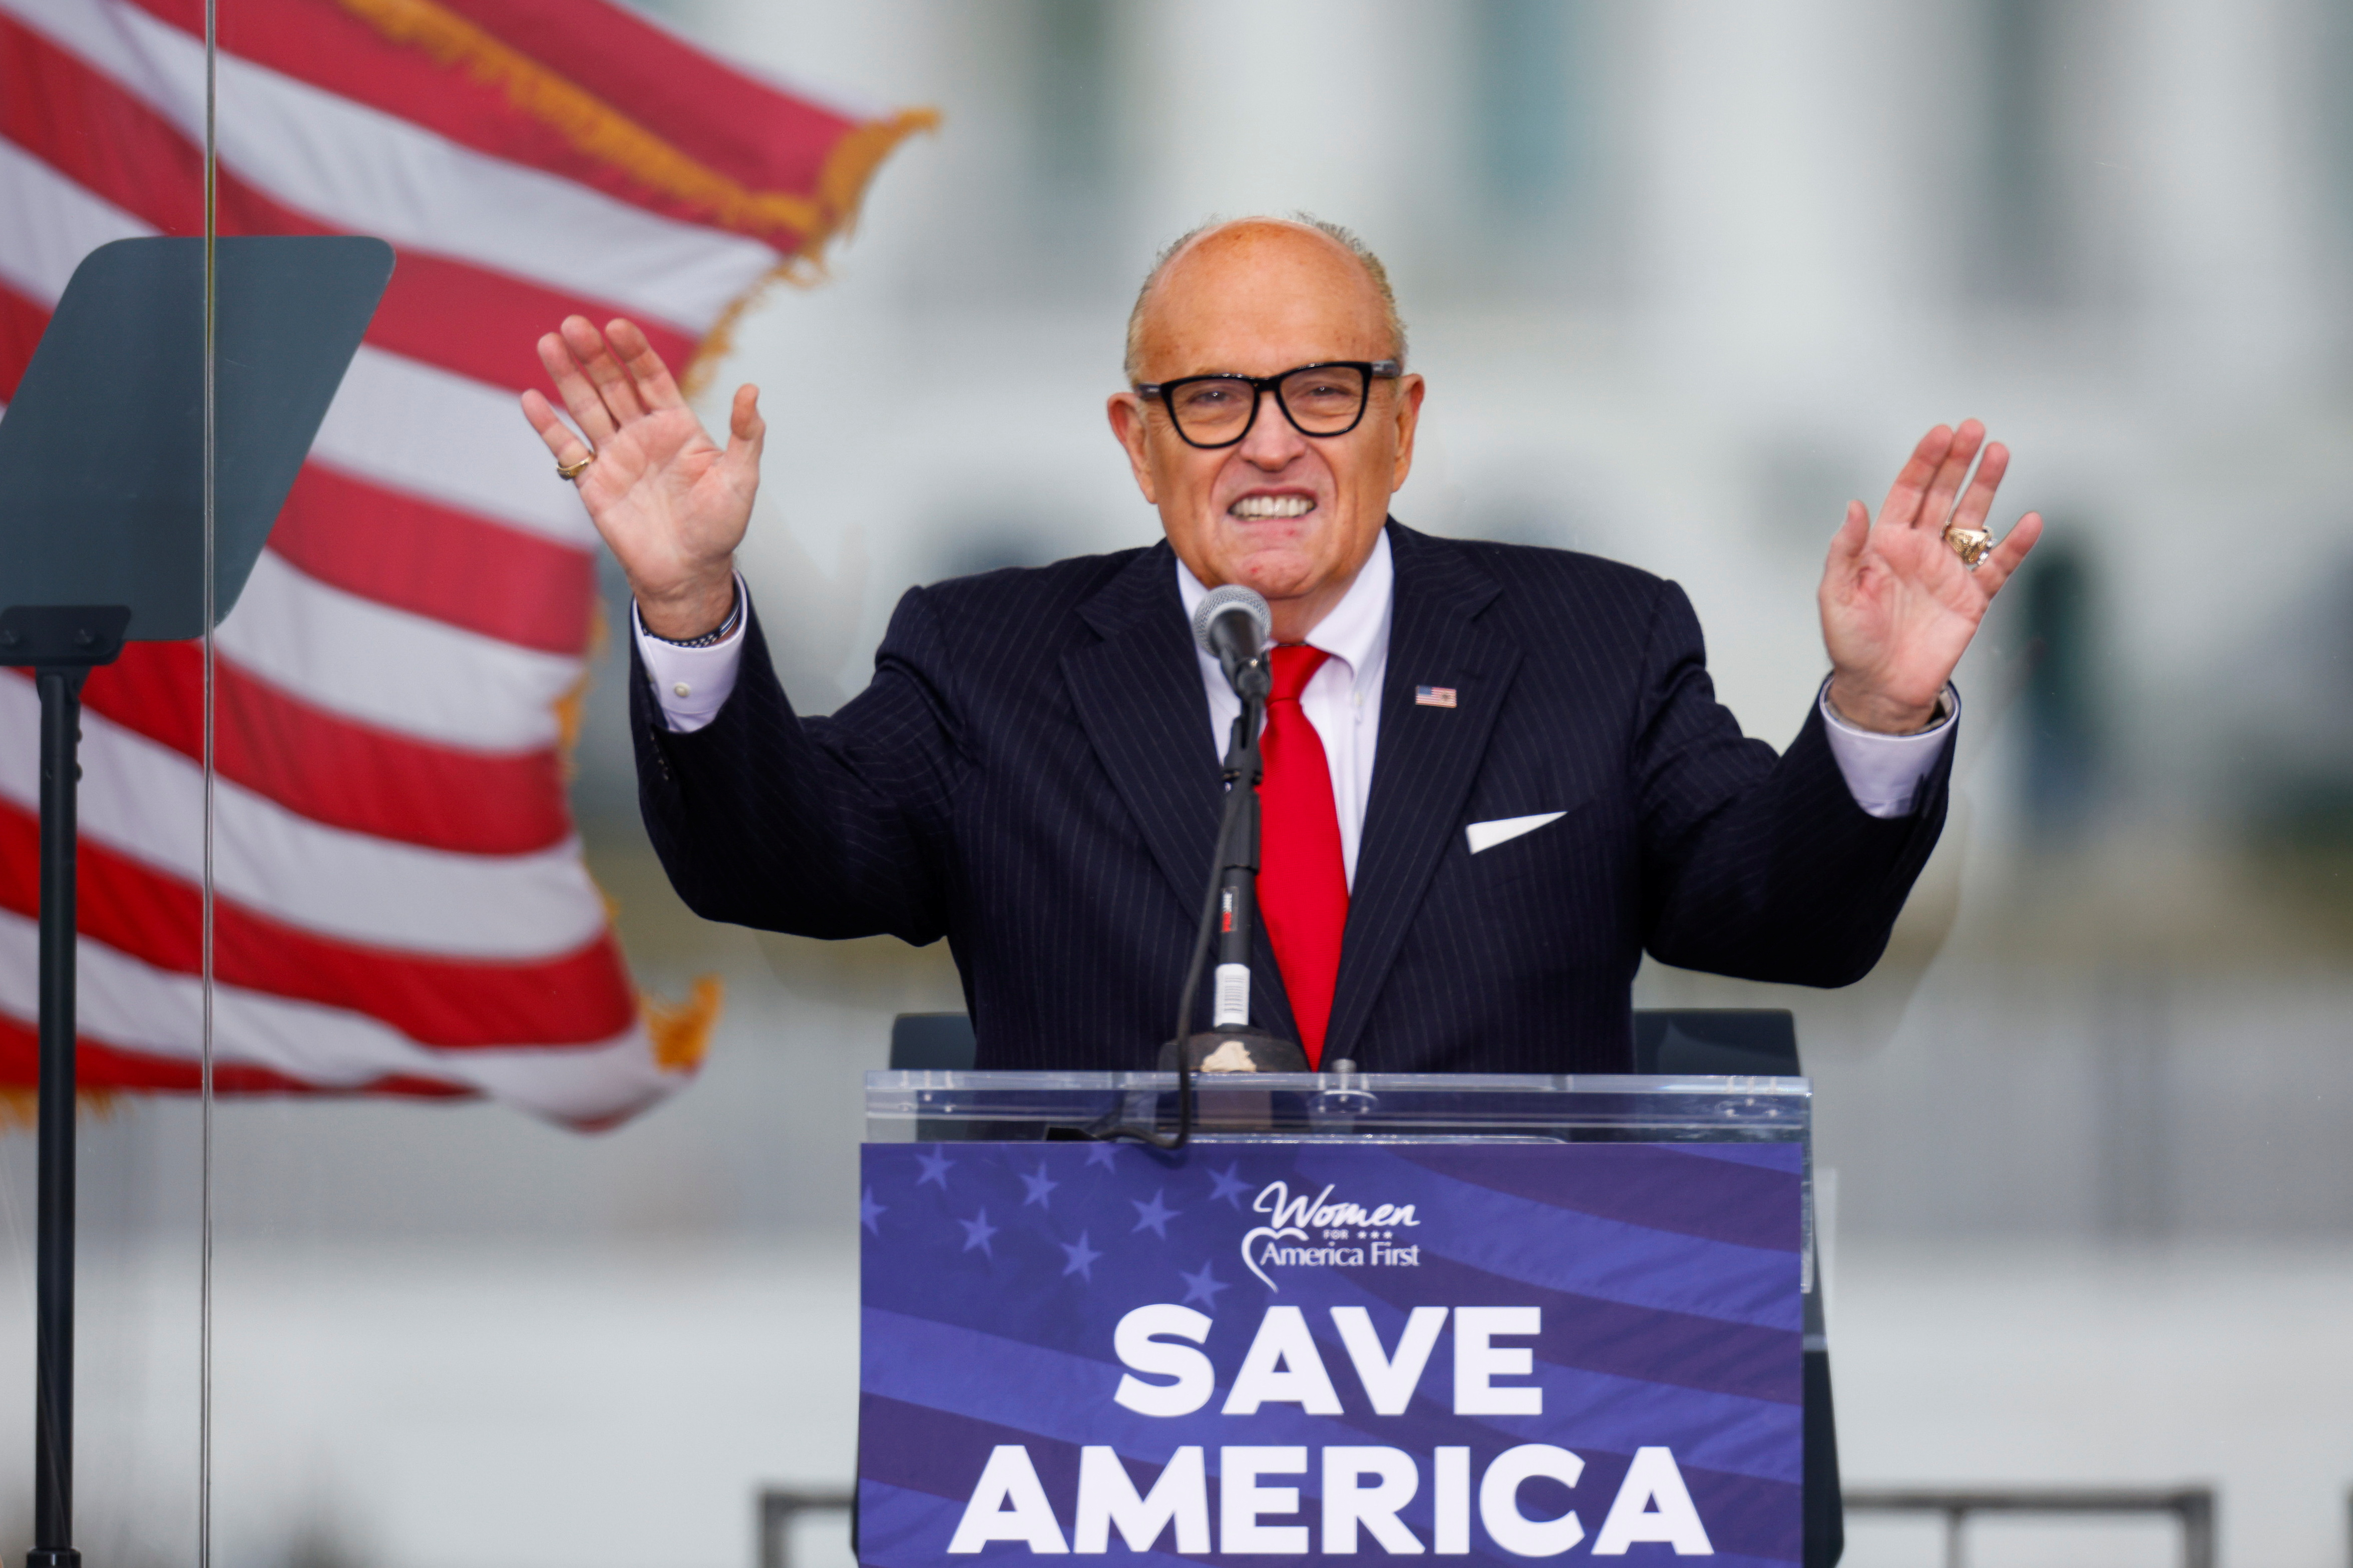 U.S. President Donald Trump's personal lawyer Rudy Giuliani speaks as Trump supporters gather by the White House ahead of his speech to contest the certification by the U.S. Congress of the results of the 2020 U.S. presidential election in Washington, U.S, January 6, 2021. REUTERS/Jim Bourg